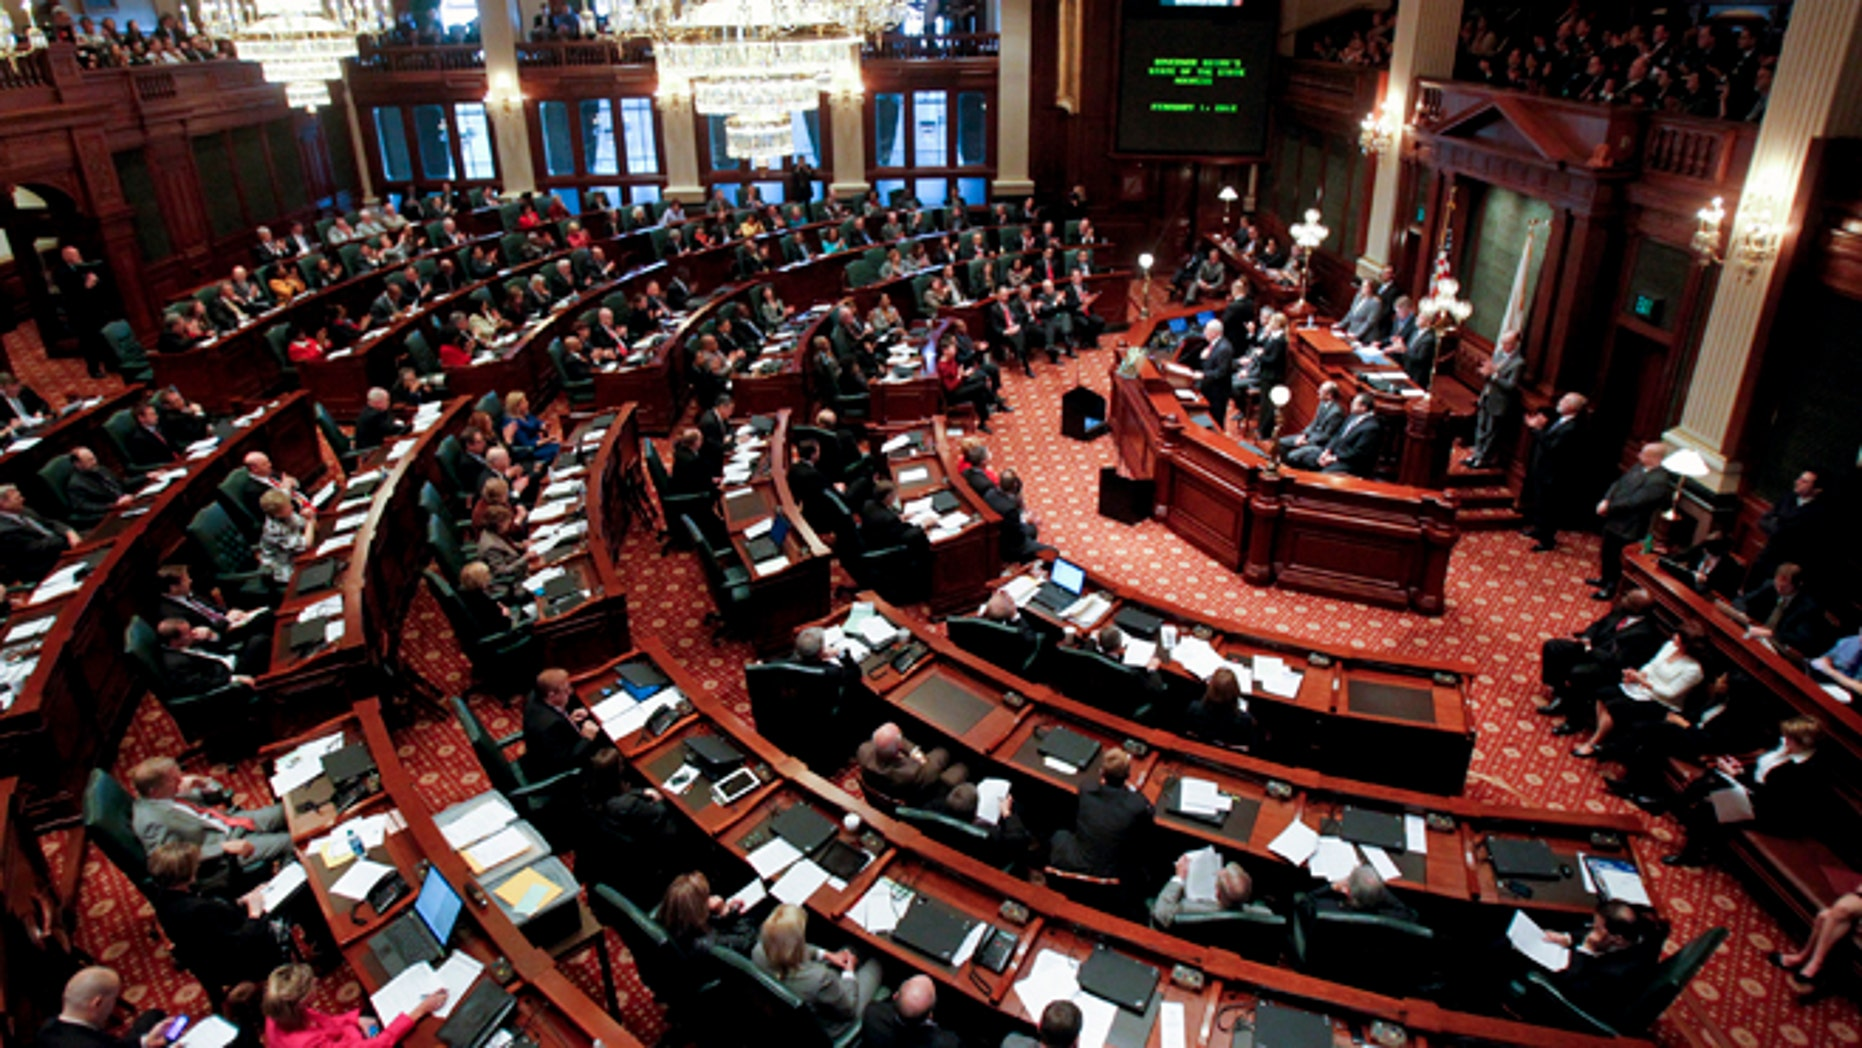 In this 2012 file photo, Illinois Gov. Pat Quinn delivers his State of the State address to the joint session of the General Assembly in Springfield, Ill.